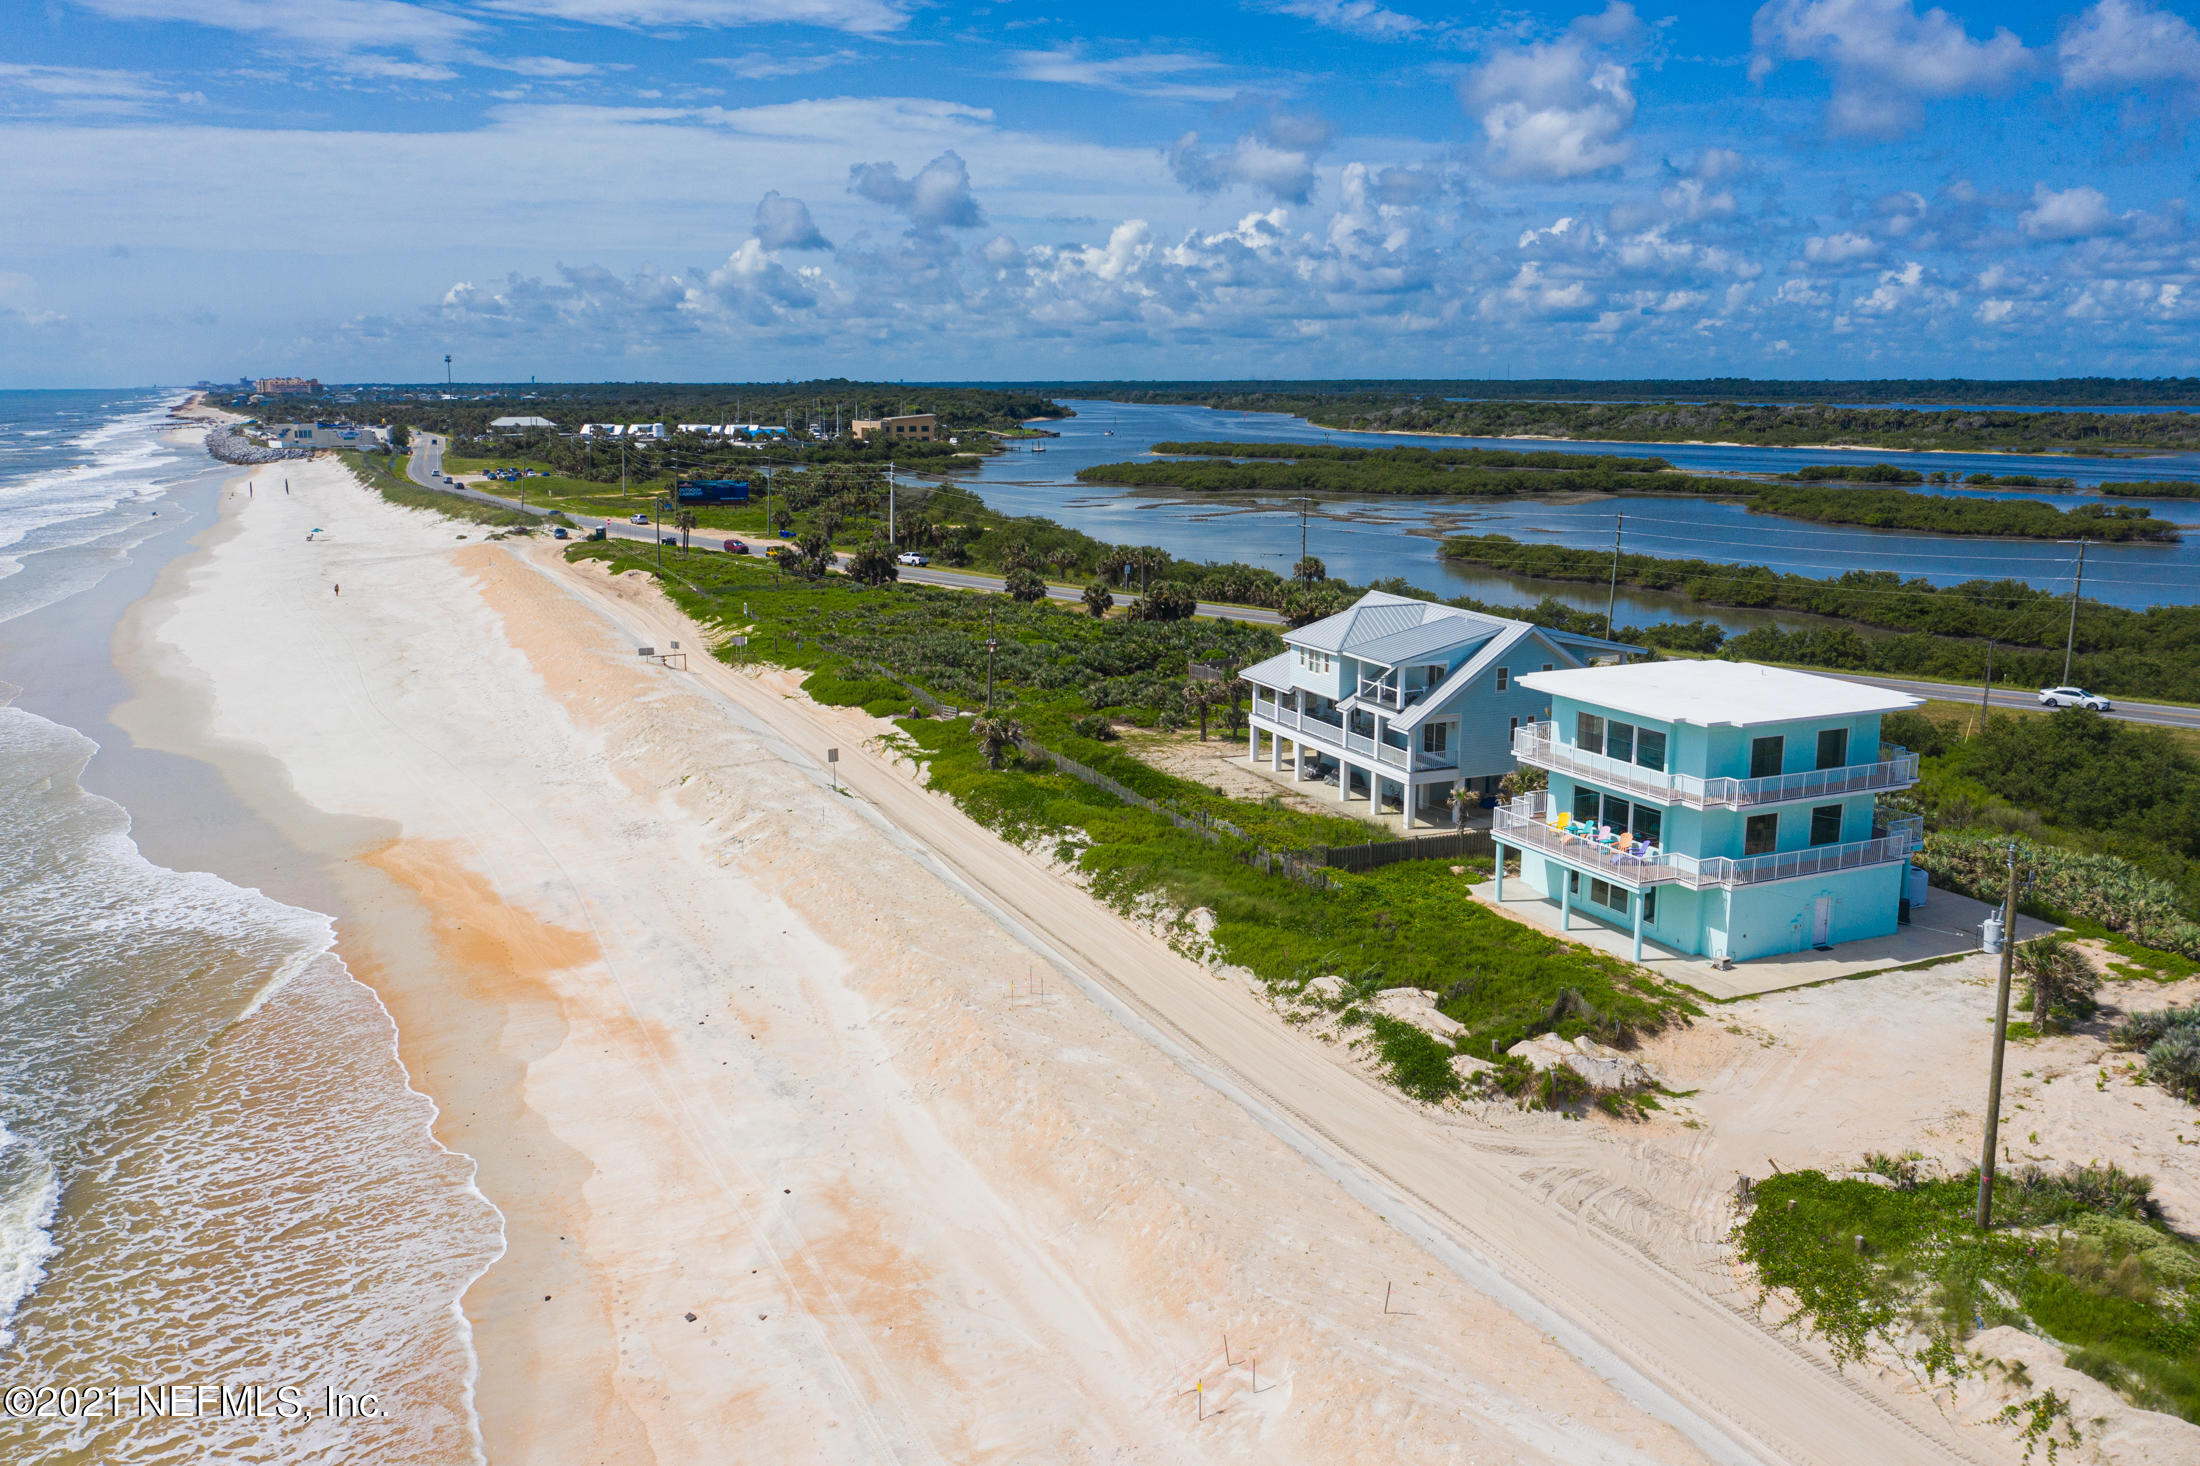 9441 OLD A1A, ST AUGUSTINE, FLORIDA 32080, 3 Bedrooms Bedrooms, ,3 BathroomsBathrooms,Residential,For sale,OLD A1A,1121340